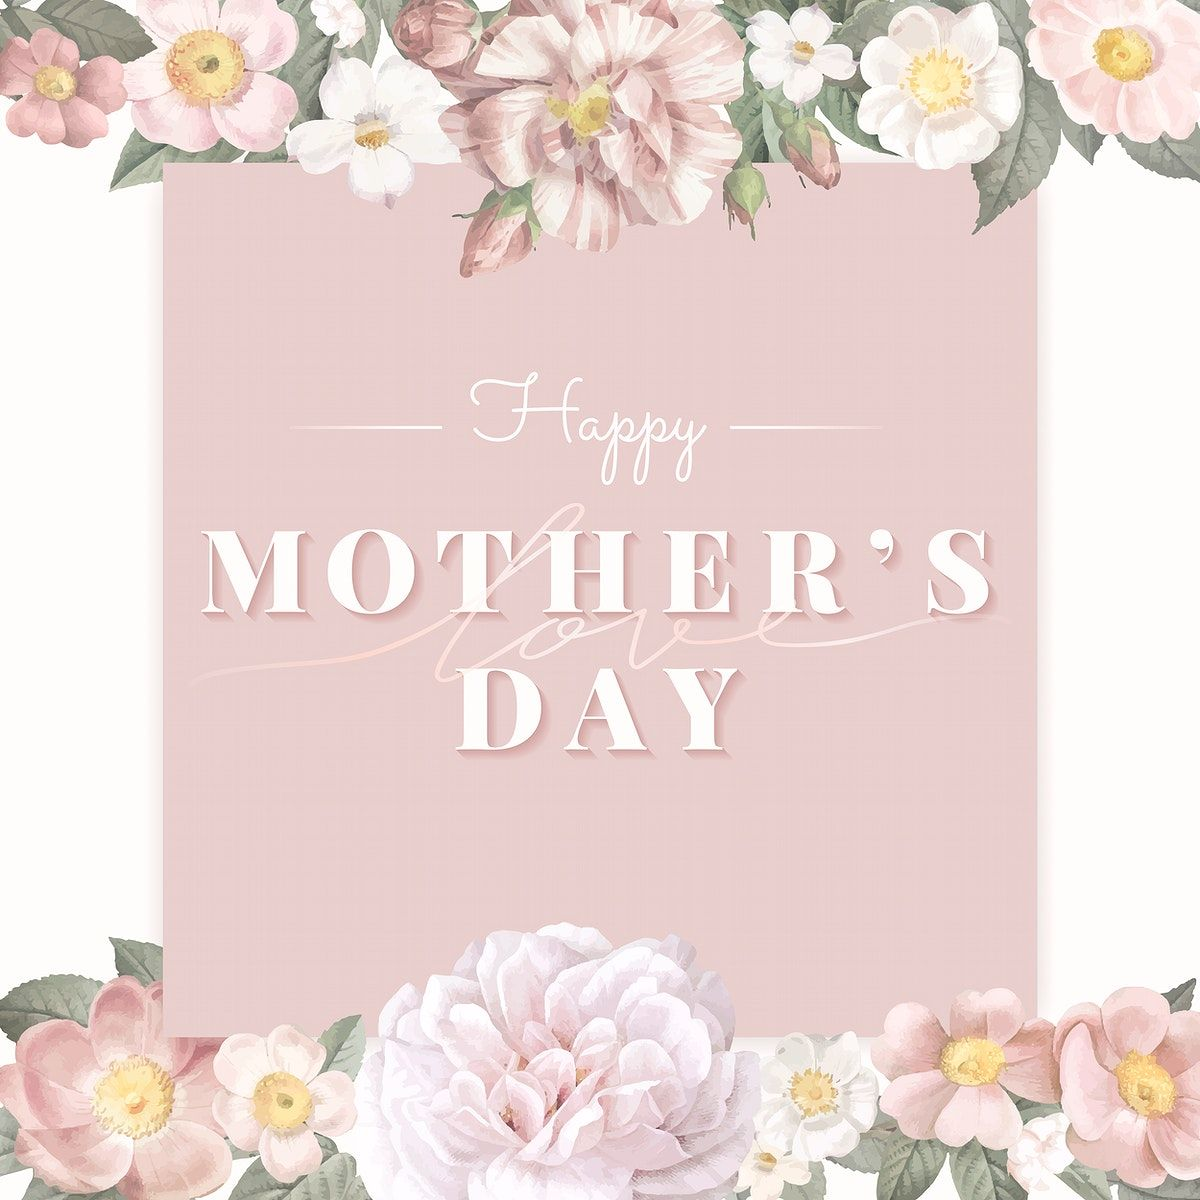 Download Premium Vector Of Floral Elegant Mother S Day Card Vector In 2020 Mothers Day Poster Flower Illustration Happy Mothers Day